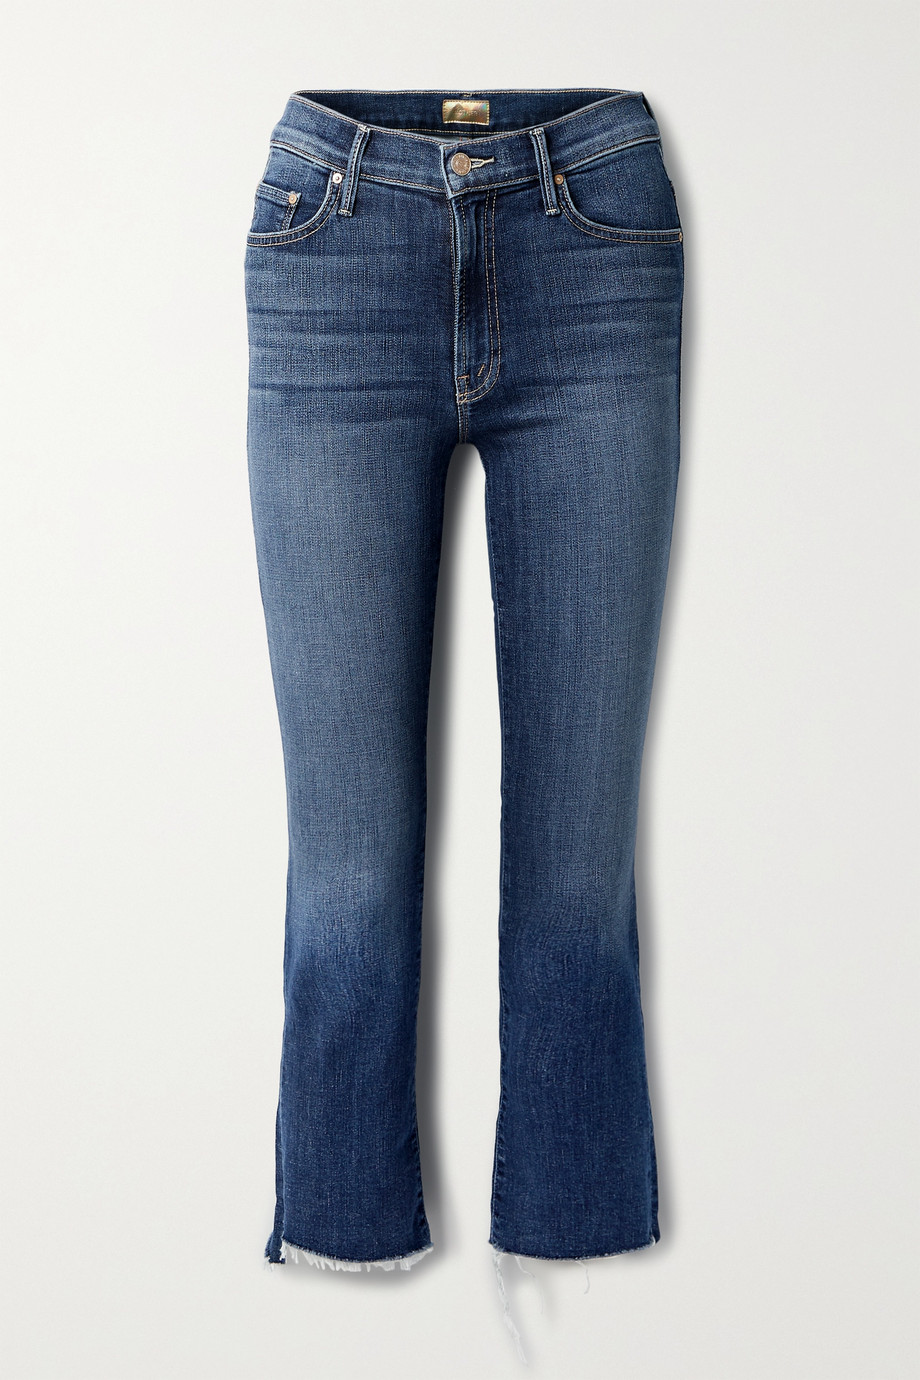 MOTHER The Insider cropped frayed high-rise flared jeans